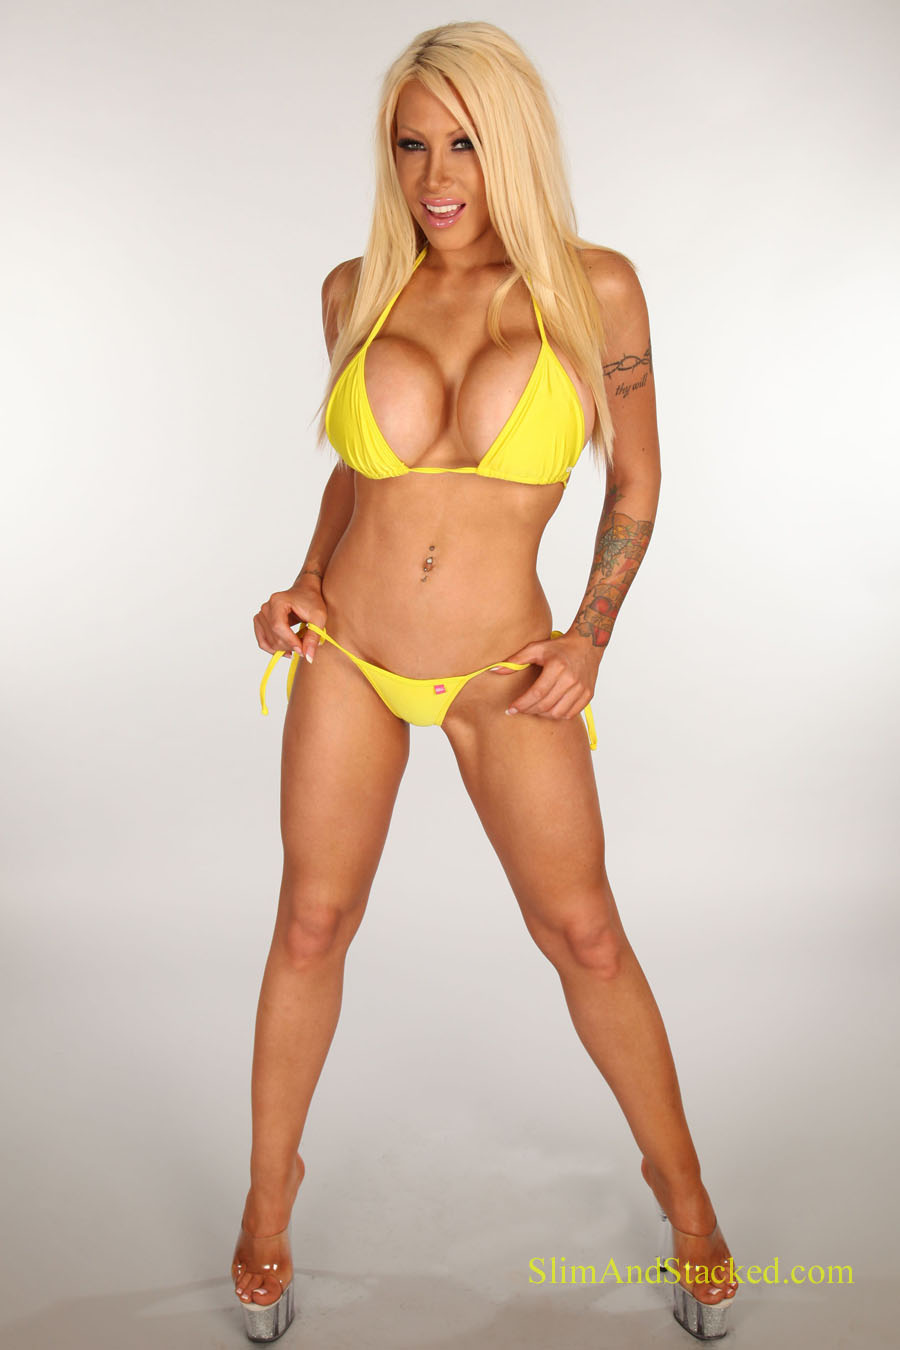 Candy Manson looks incredible in a yellow bikini.  She looks even hotter out of it.  Get a full set of Candy, in ultra high 3000 piexel resolution.  Contact dezertimagez@gmail.com for pricing